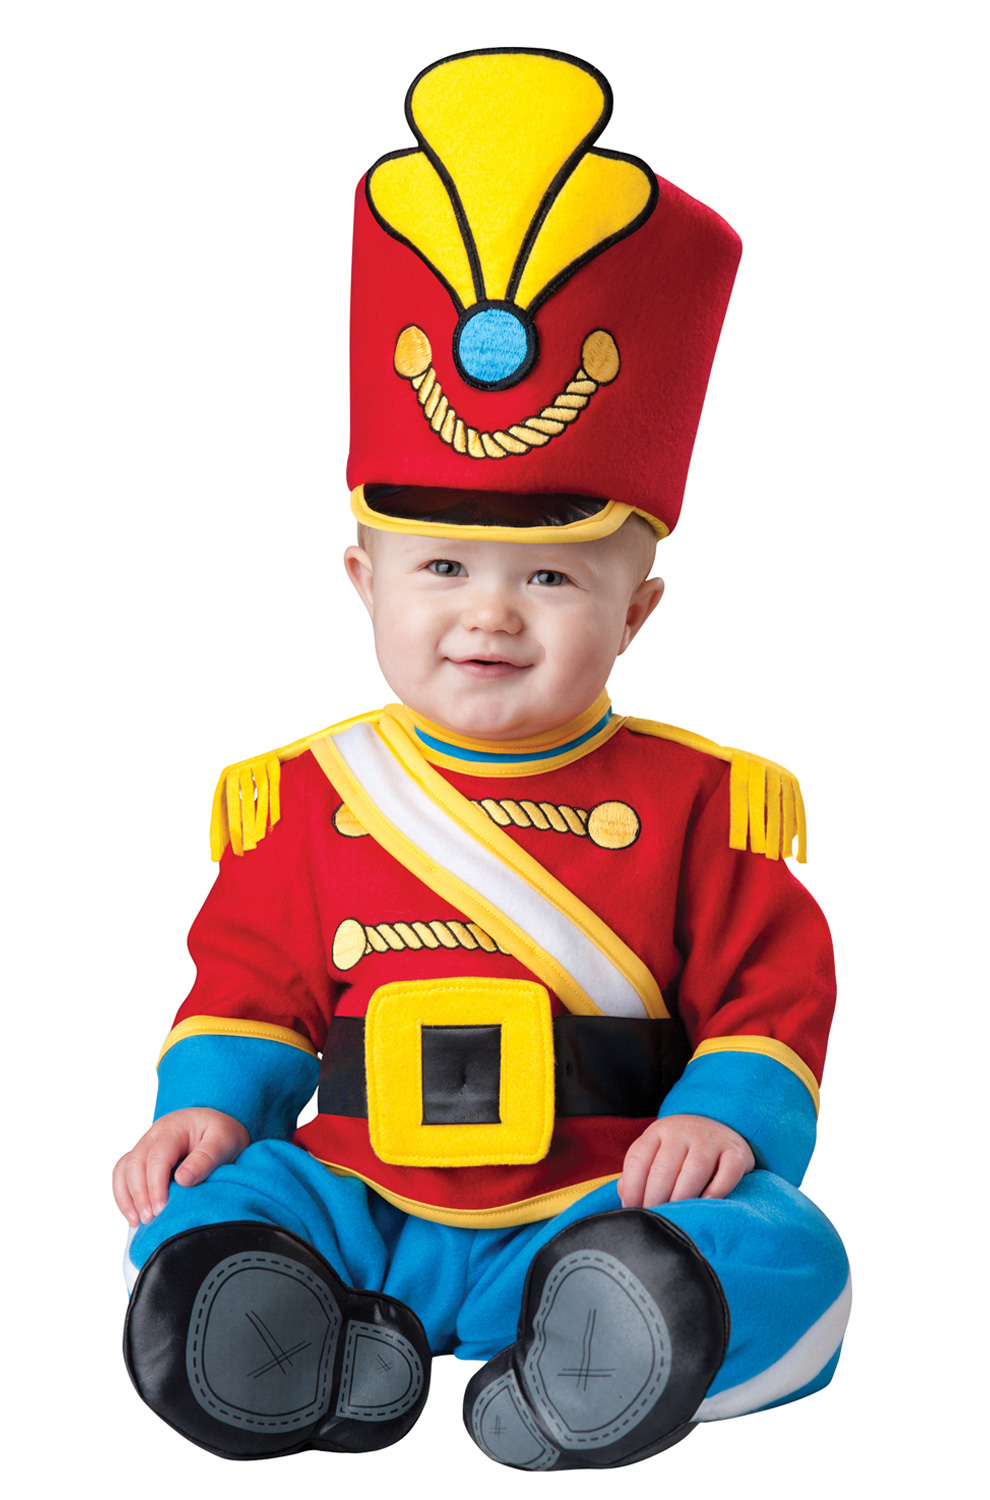 tiny toy soldier infanttoddler costume purecostumescom